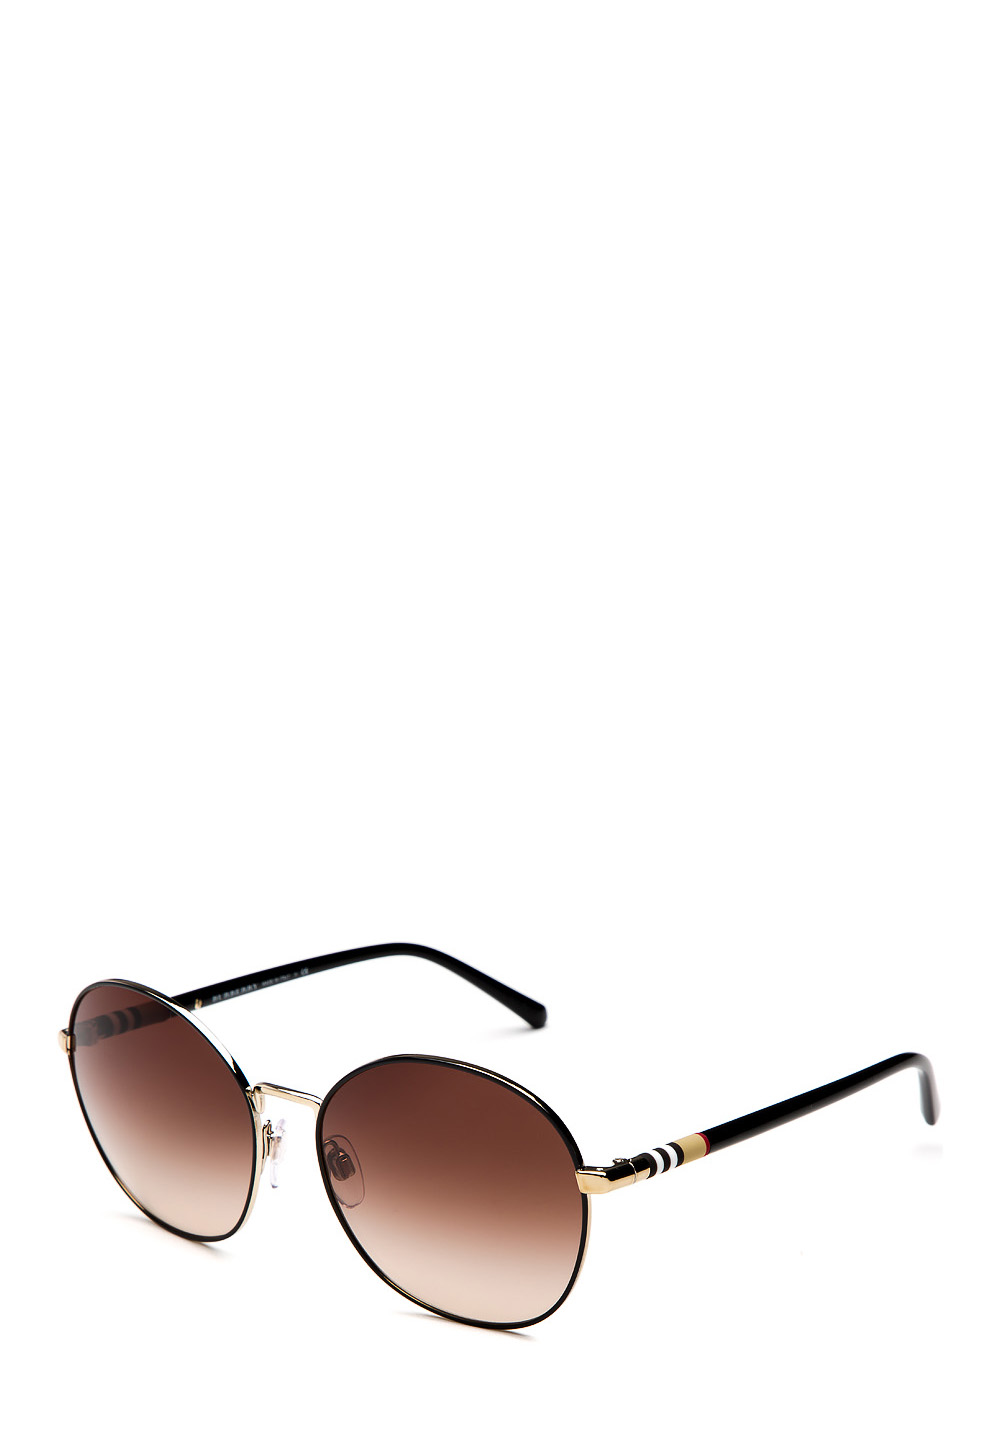 Sonnenbrille Be3094, UV 400, golden